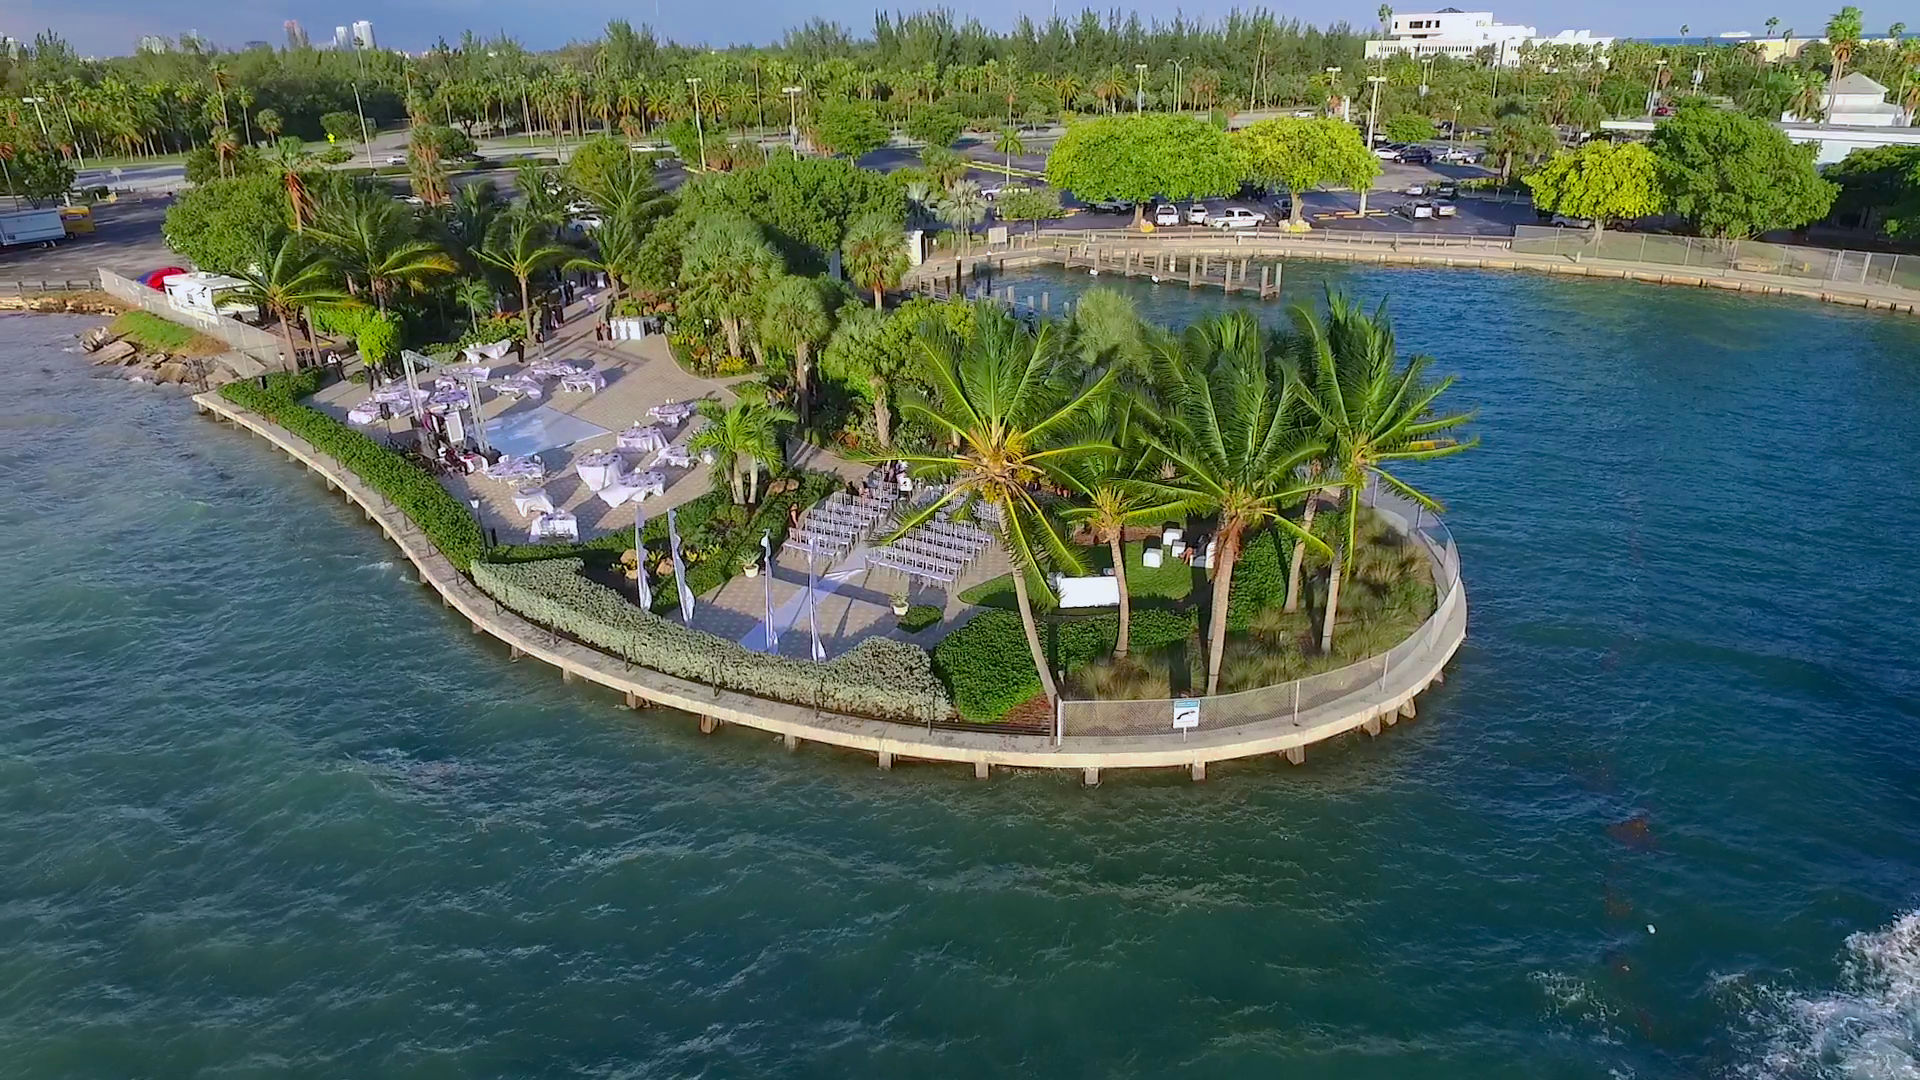 17 Best images about Sunset Cove at Miami Seaquarium on ...  |Sunset Cove Miami